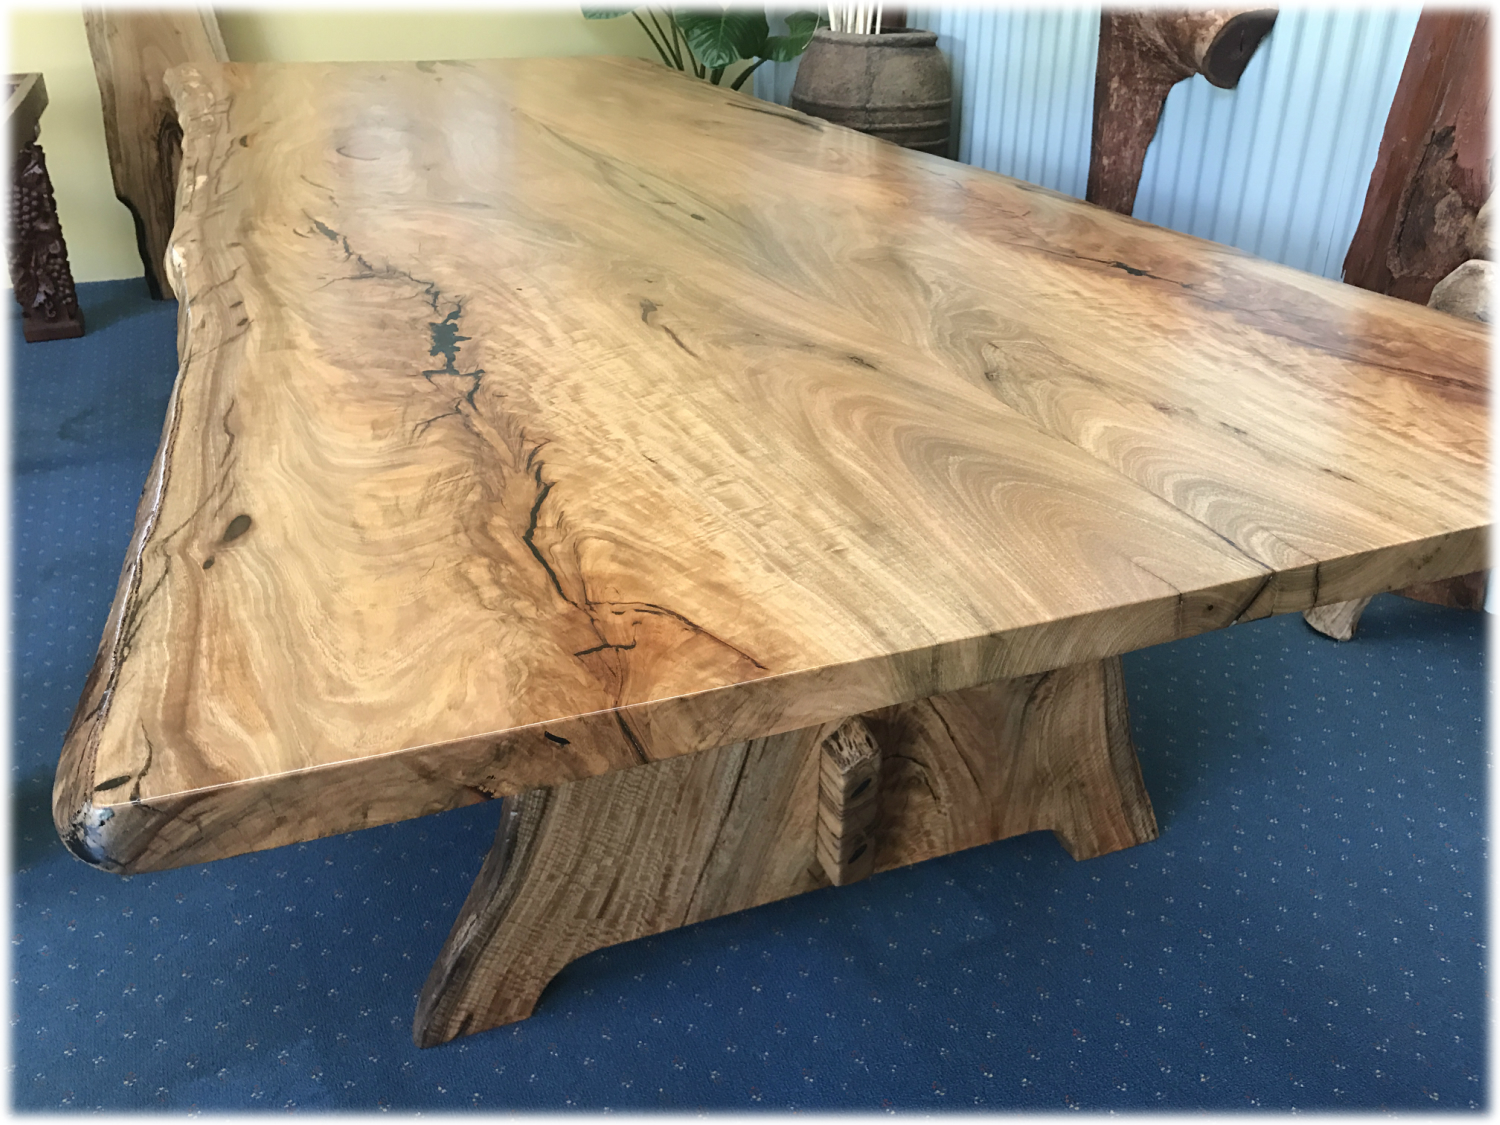 Marri Boardroom Table 3.6m x 1.3m